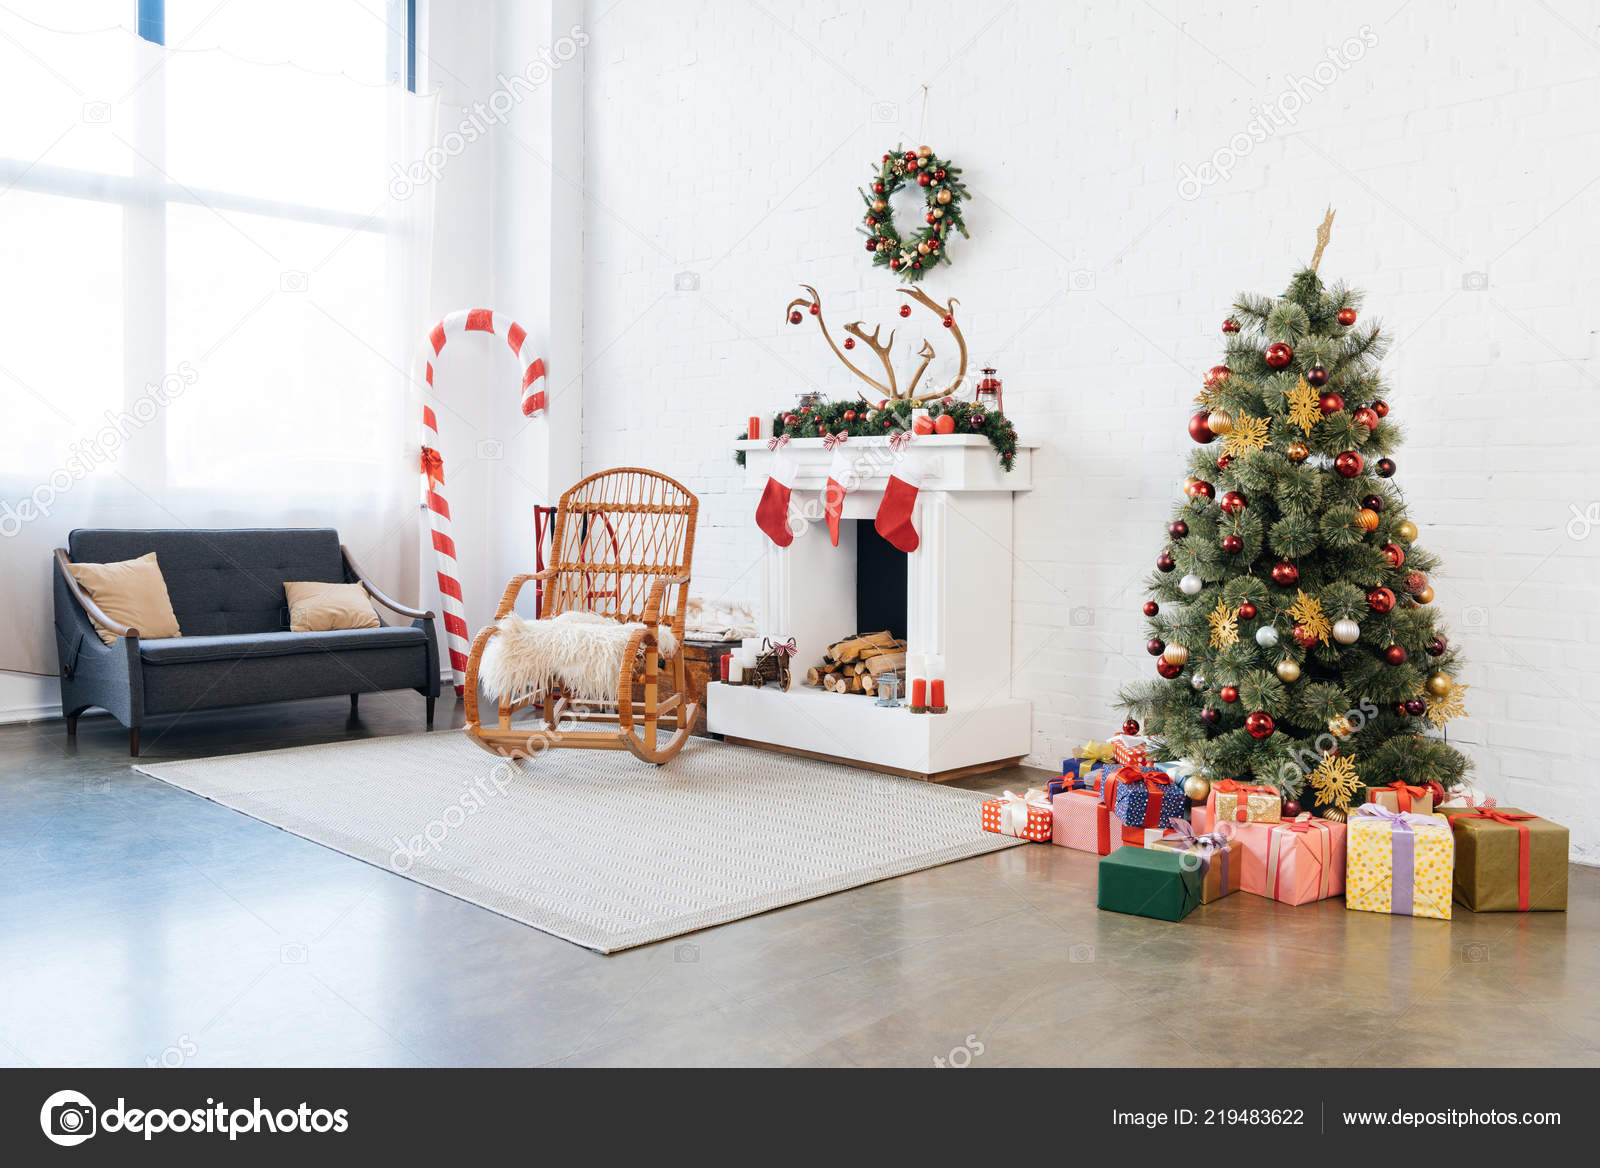 Stupendous Decorated Room Rocking Chair Christmas Tree Presents Winter Machost Co Dining Chair Design Ideas Machostcouk